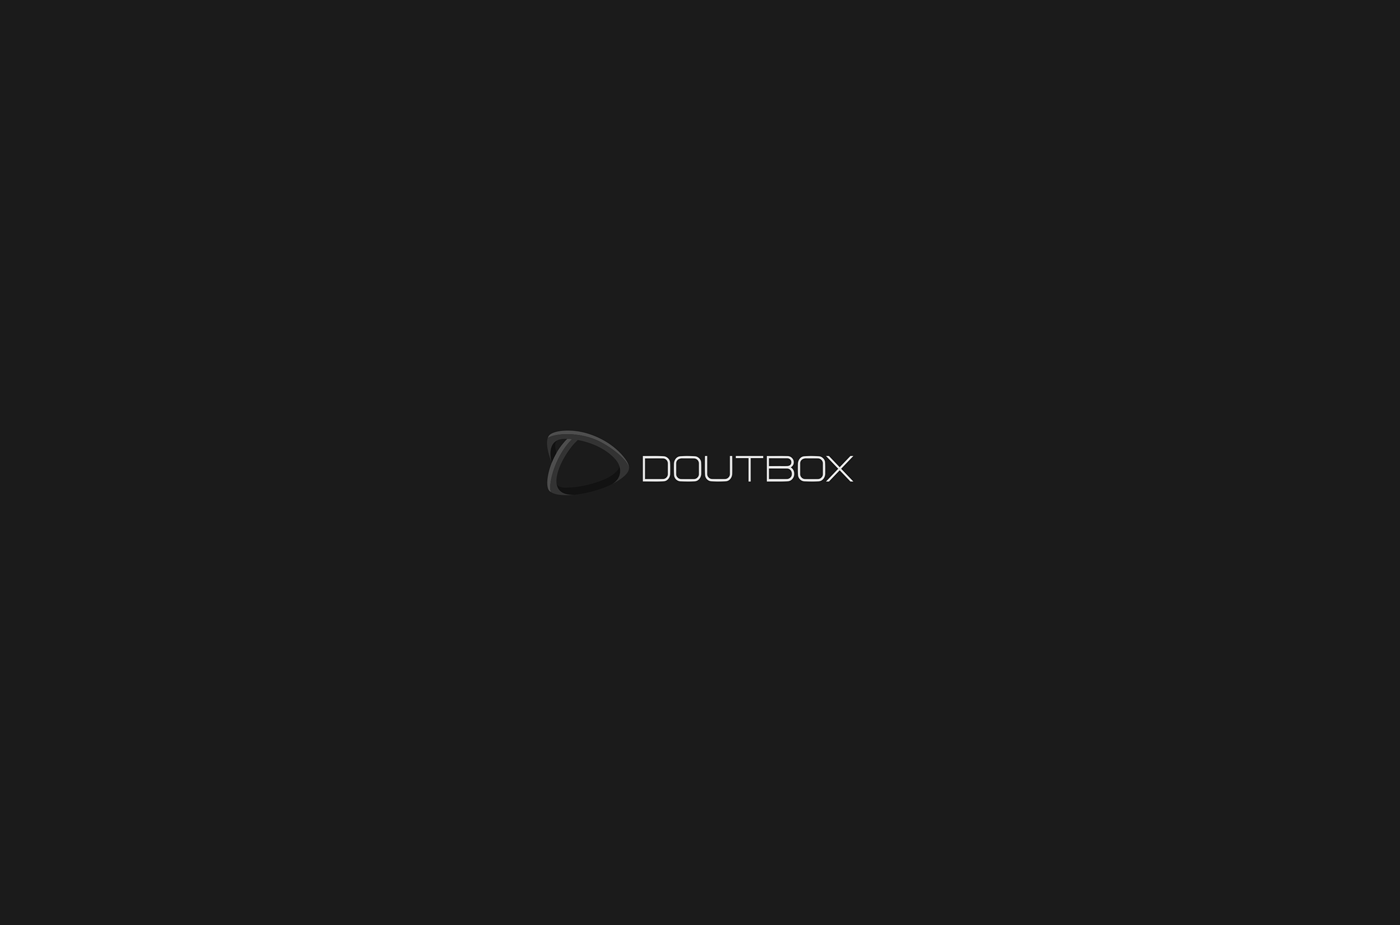 Doutbox.png